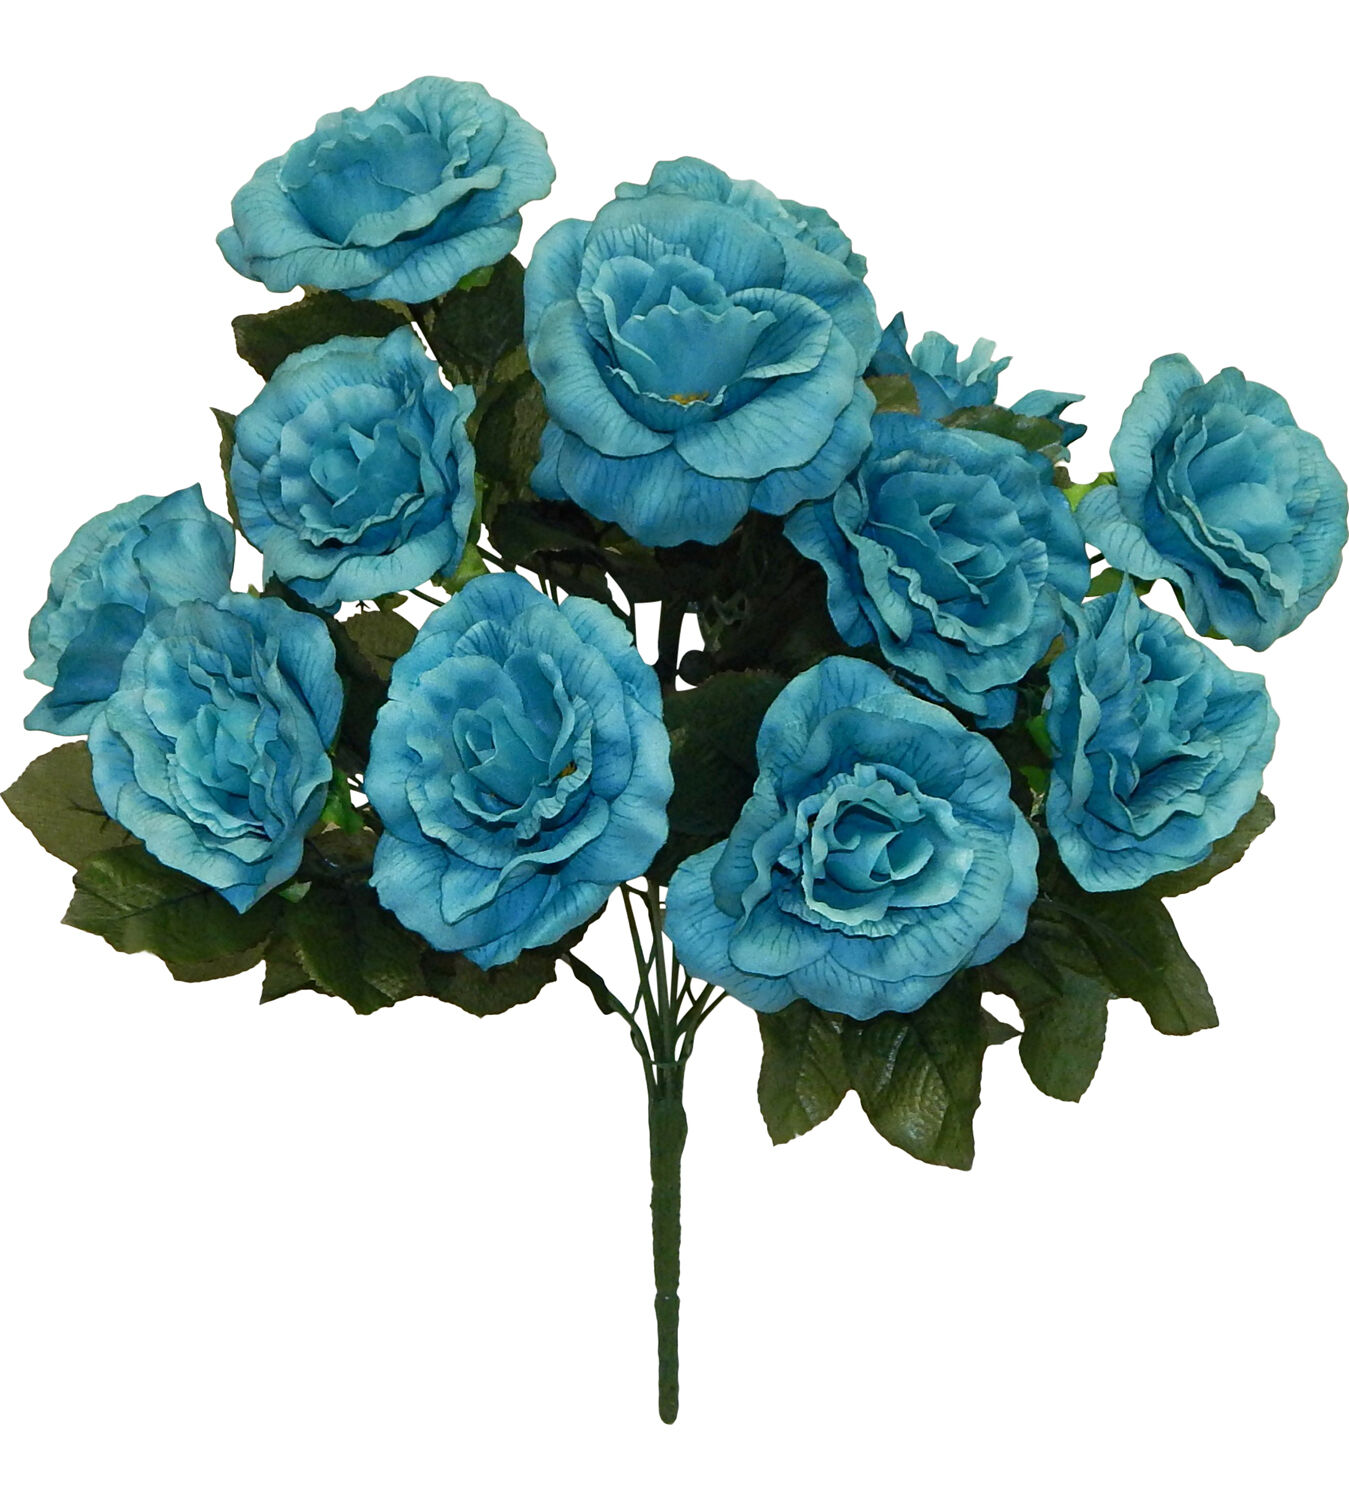 12 Open Roses Turquoise Blue Silk Wedding Flowers Bridal Bouquets ...